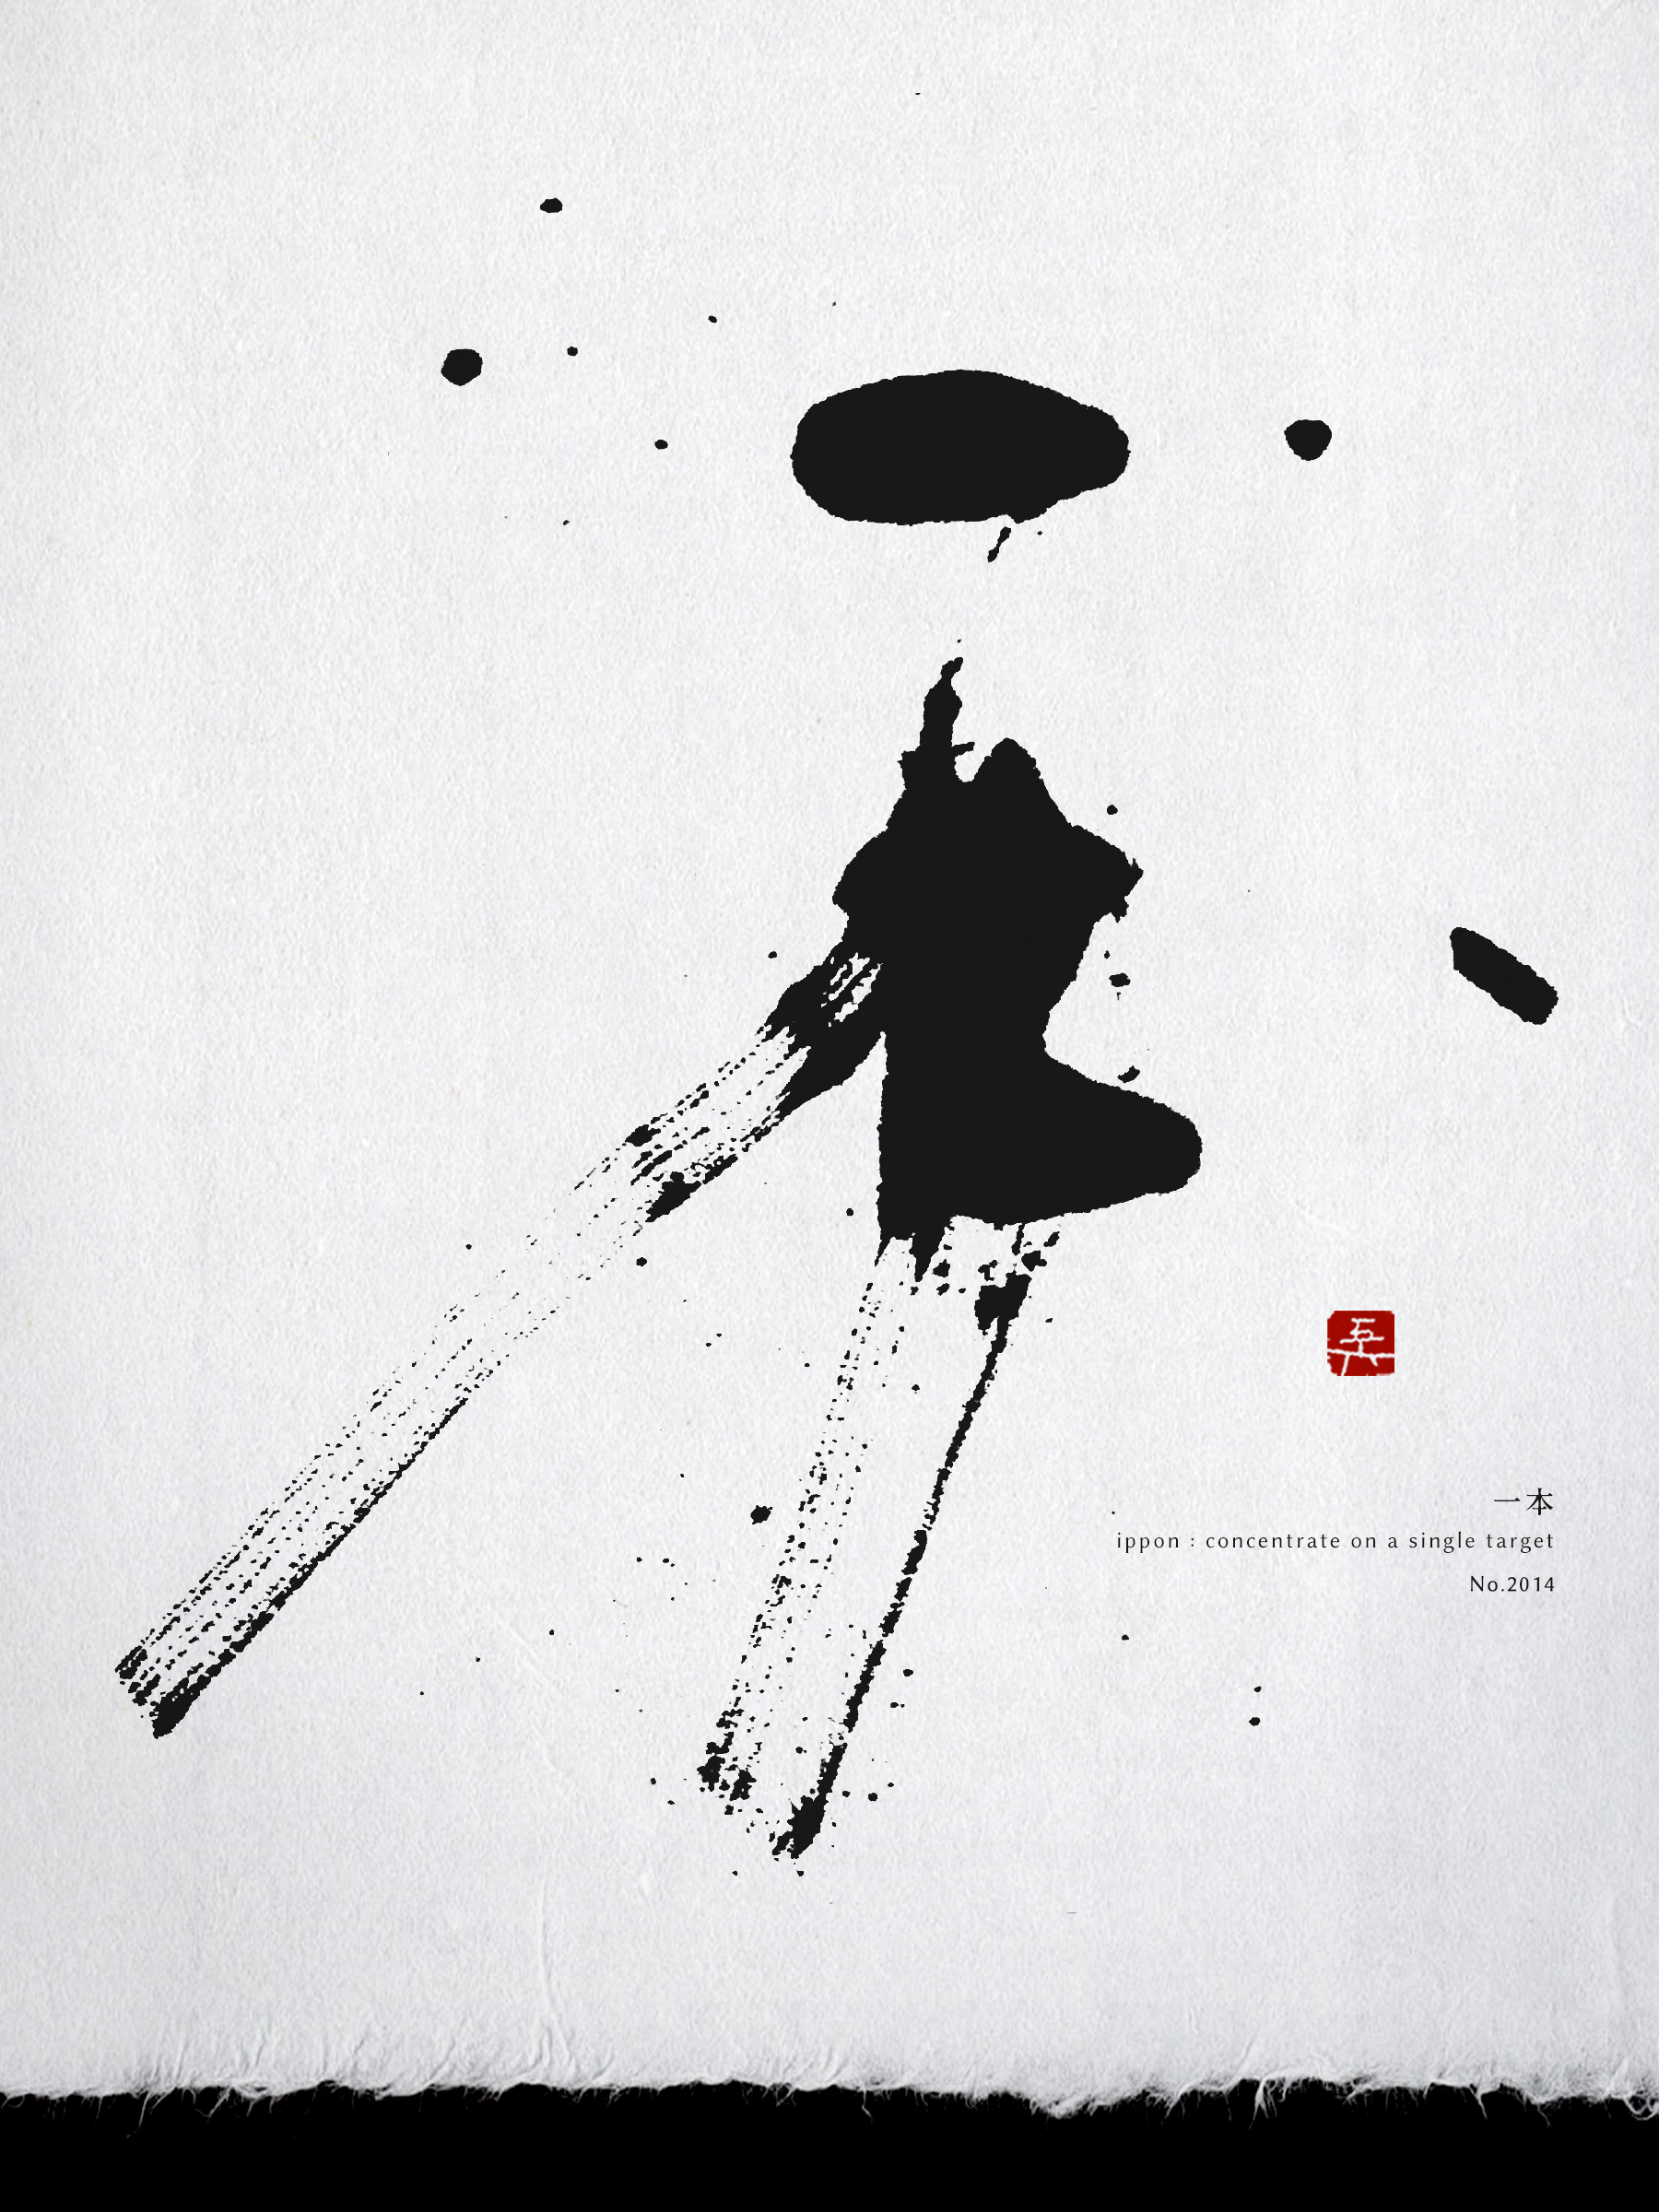 一本 | concentrate on a single target 書道作品 japaneseart japanese calligraphy 書家 田川悟郎 Goroh Tagawa